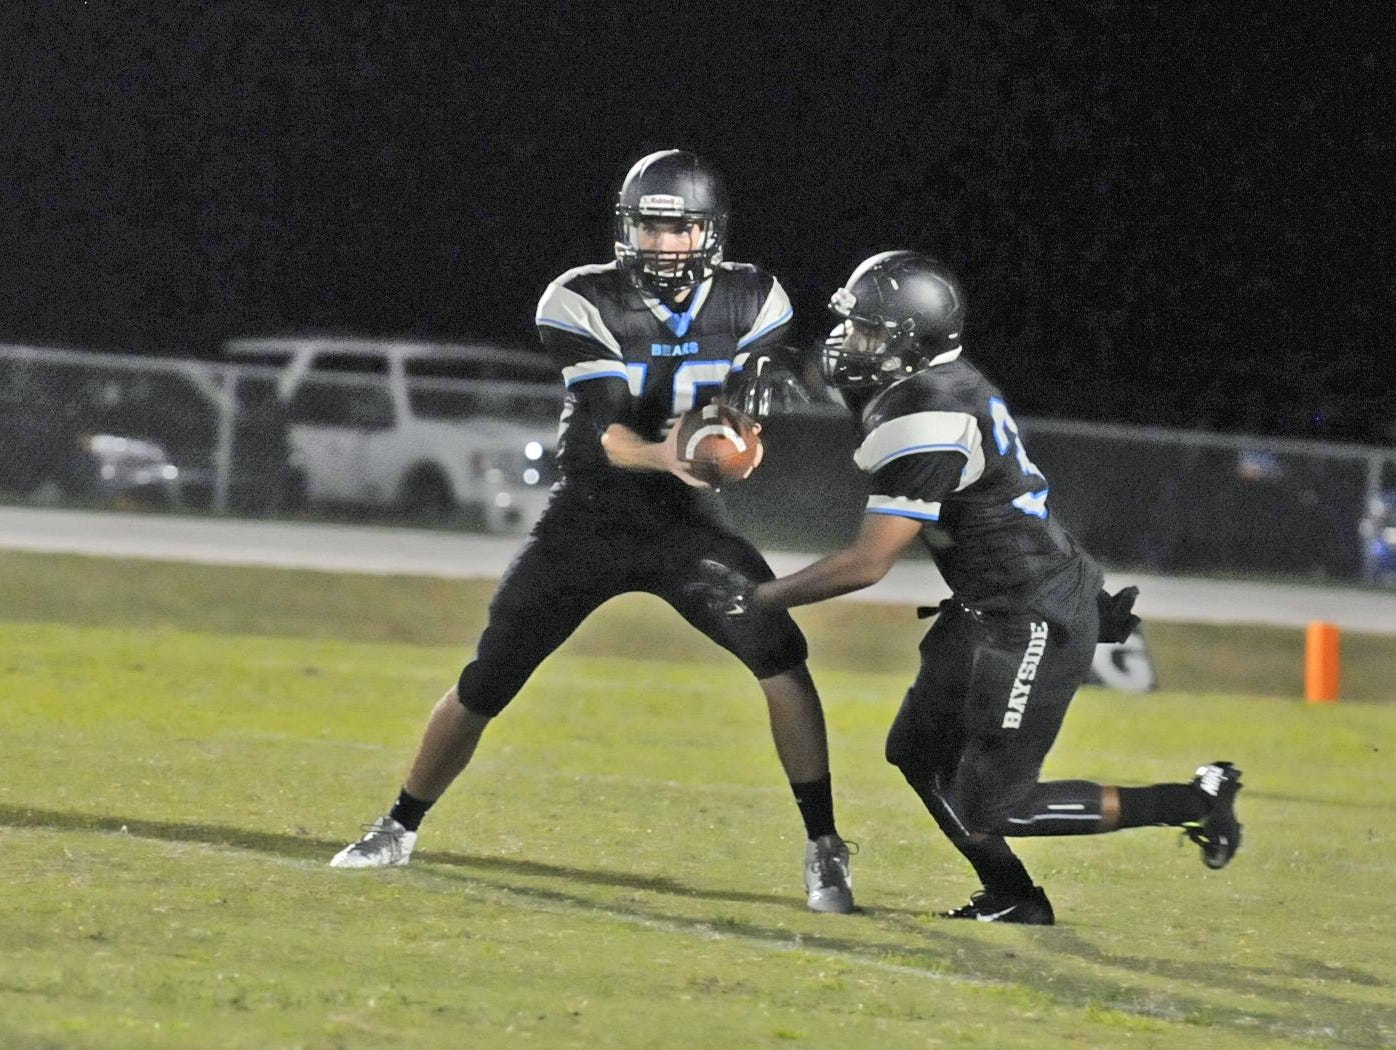 Bayside High traveled to Okeechobee for a district game on Friday night.